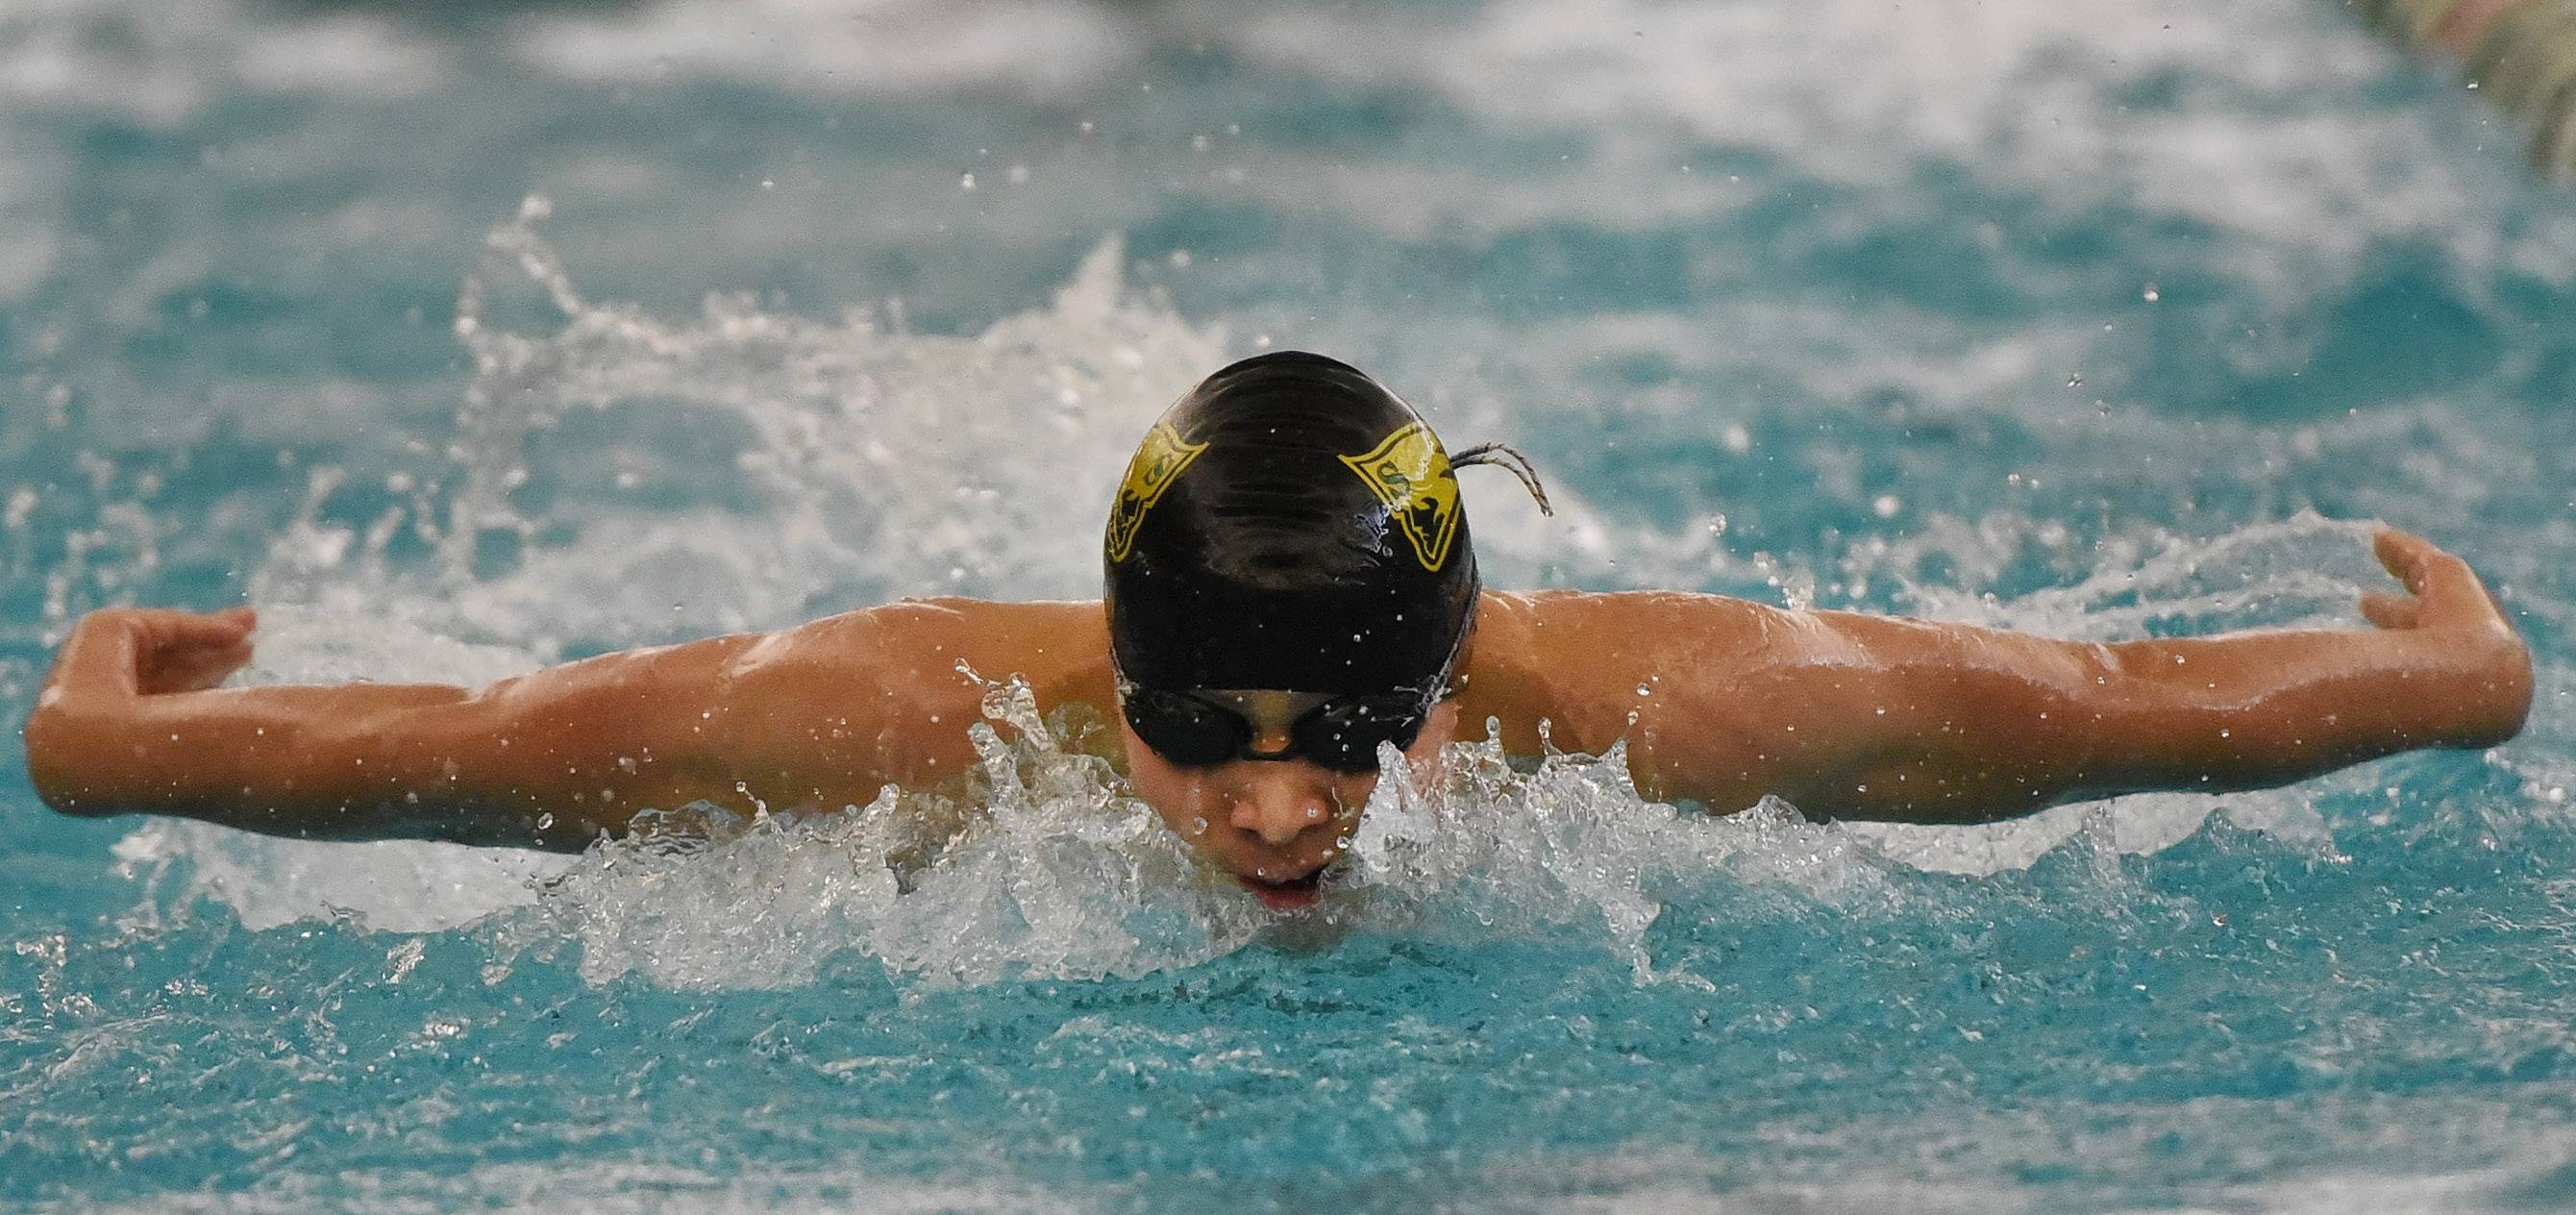 Daniel Ng, a state qualifier for Stevenson last year and a co-captain this year, competes in the 200 IM during the Lake County meet last season at Stevenson.